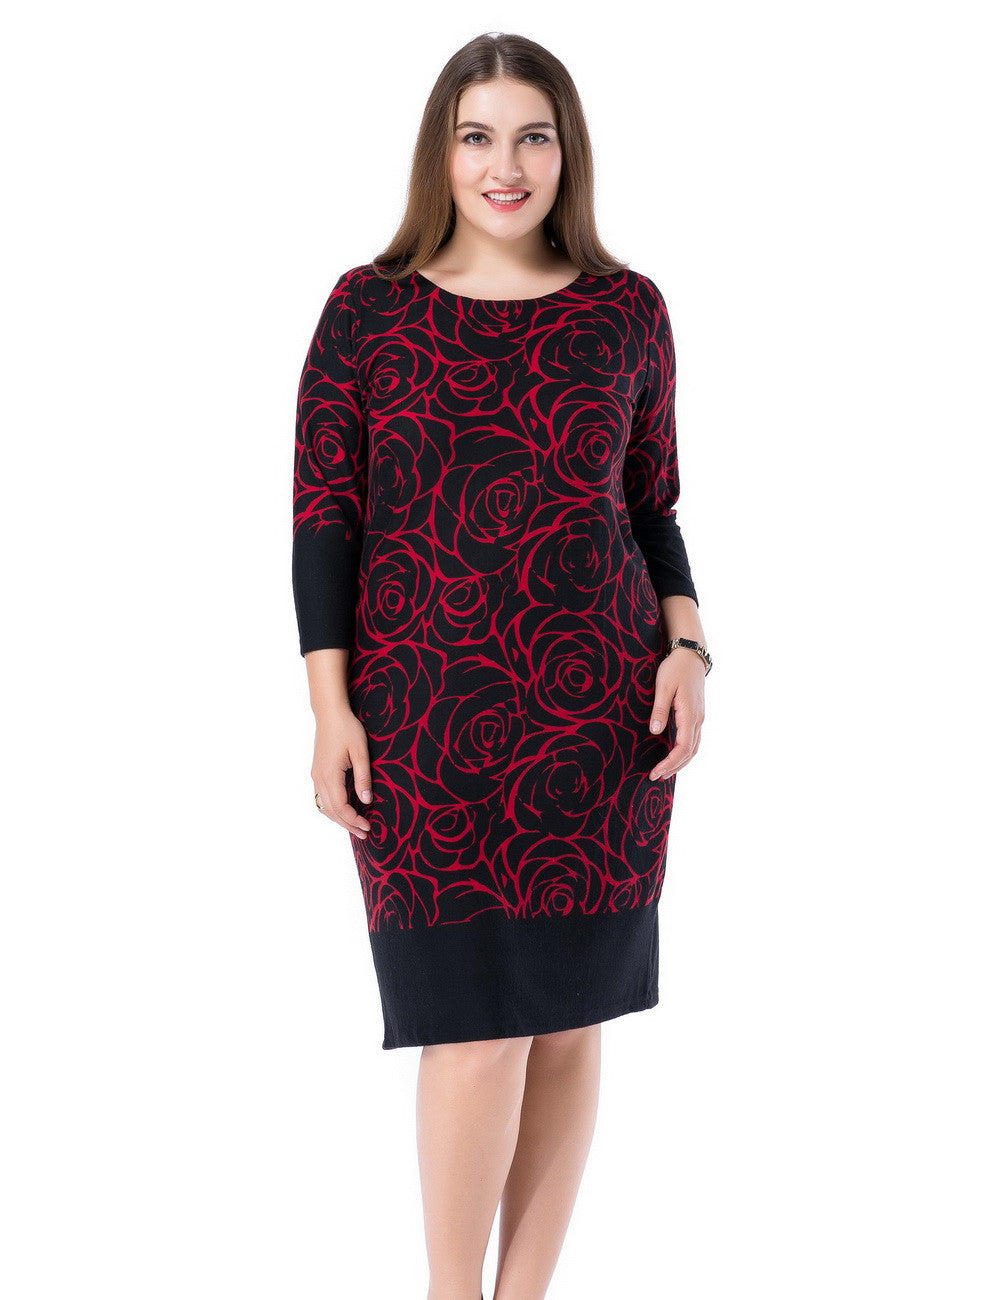 Chicwe Women's Plus Size Printed Shift Dress Cashmere Touch US12-28